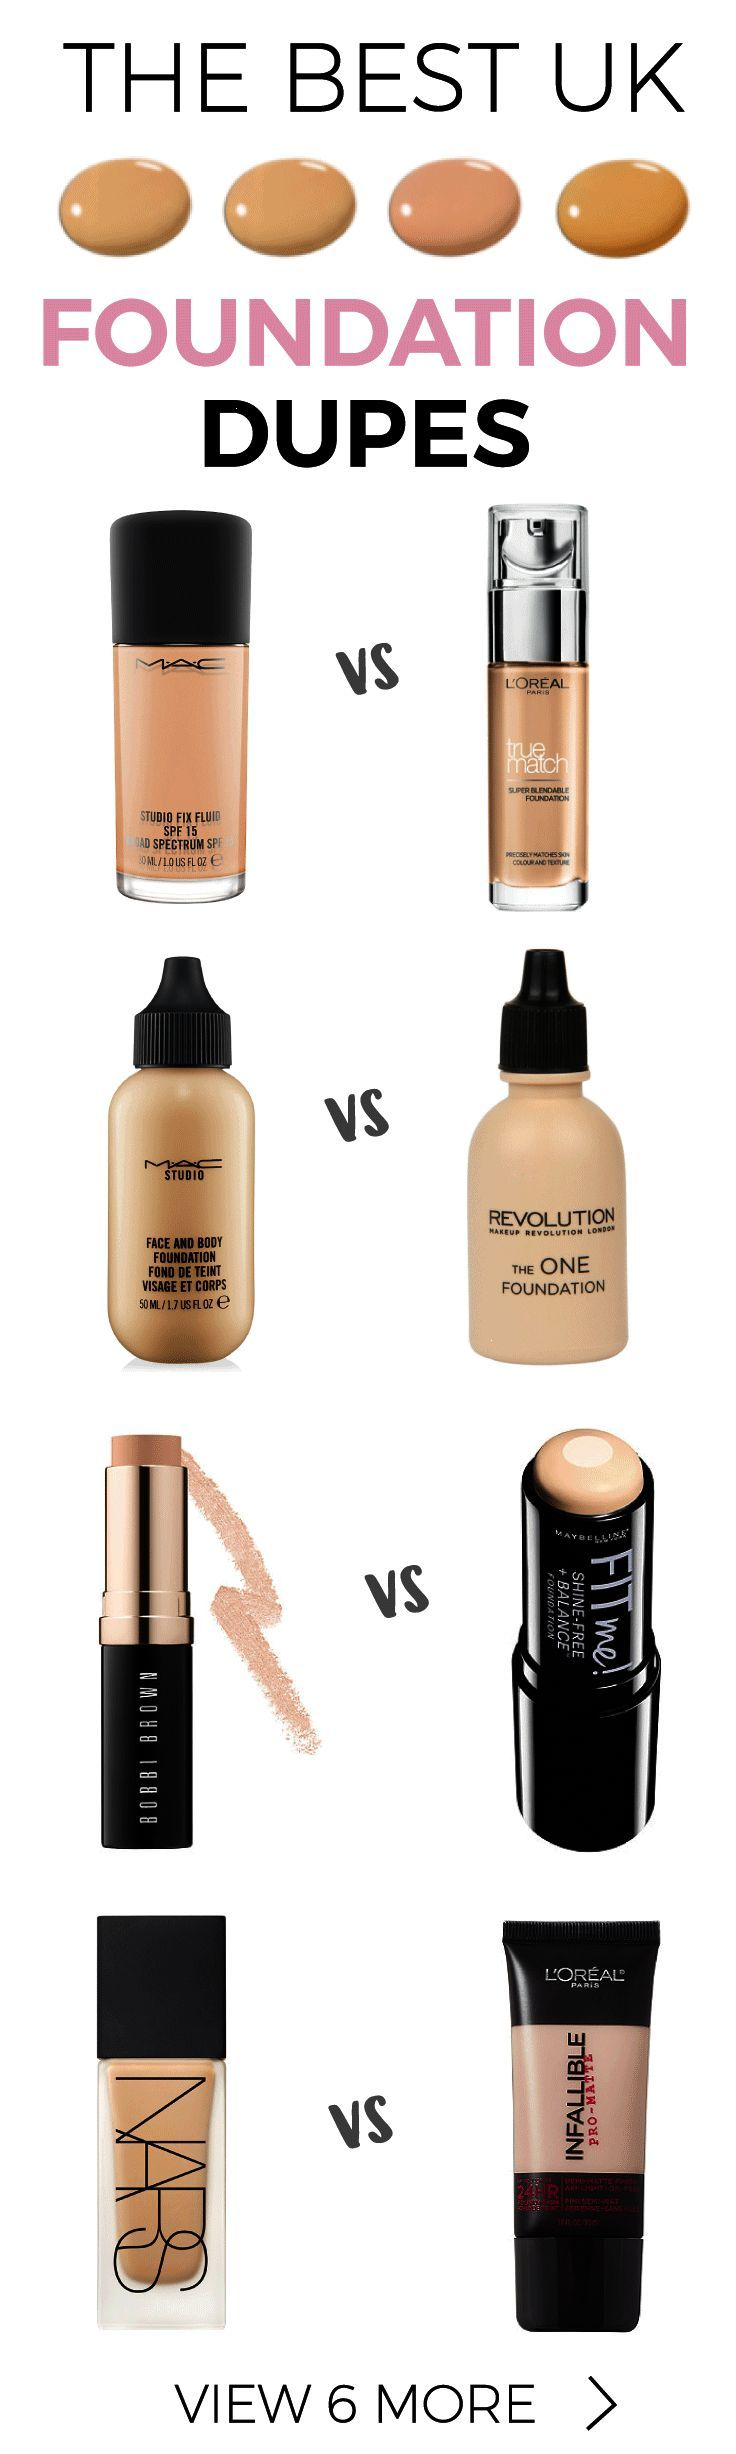 Save yourself 's with these awesome Foundation Dupes UK